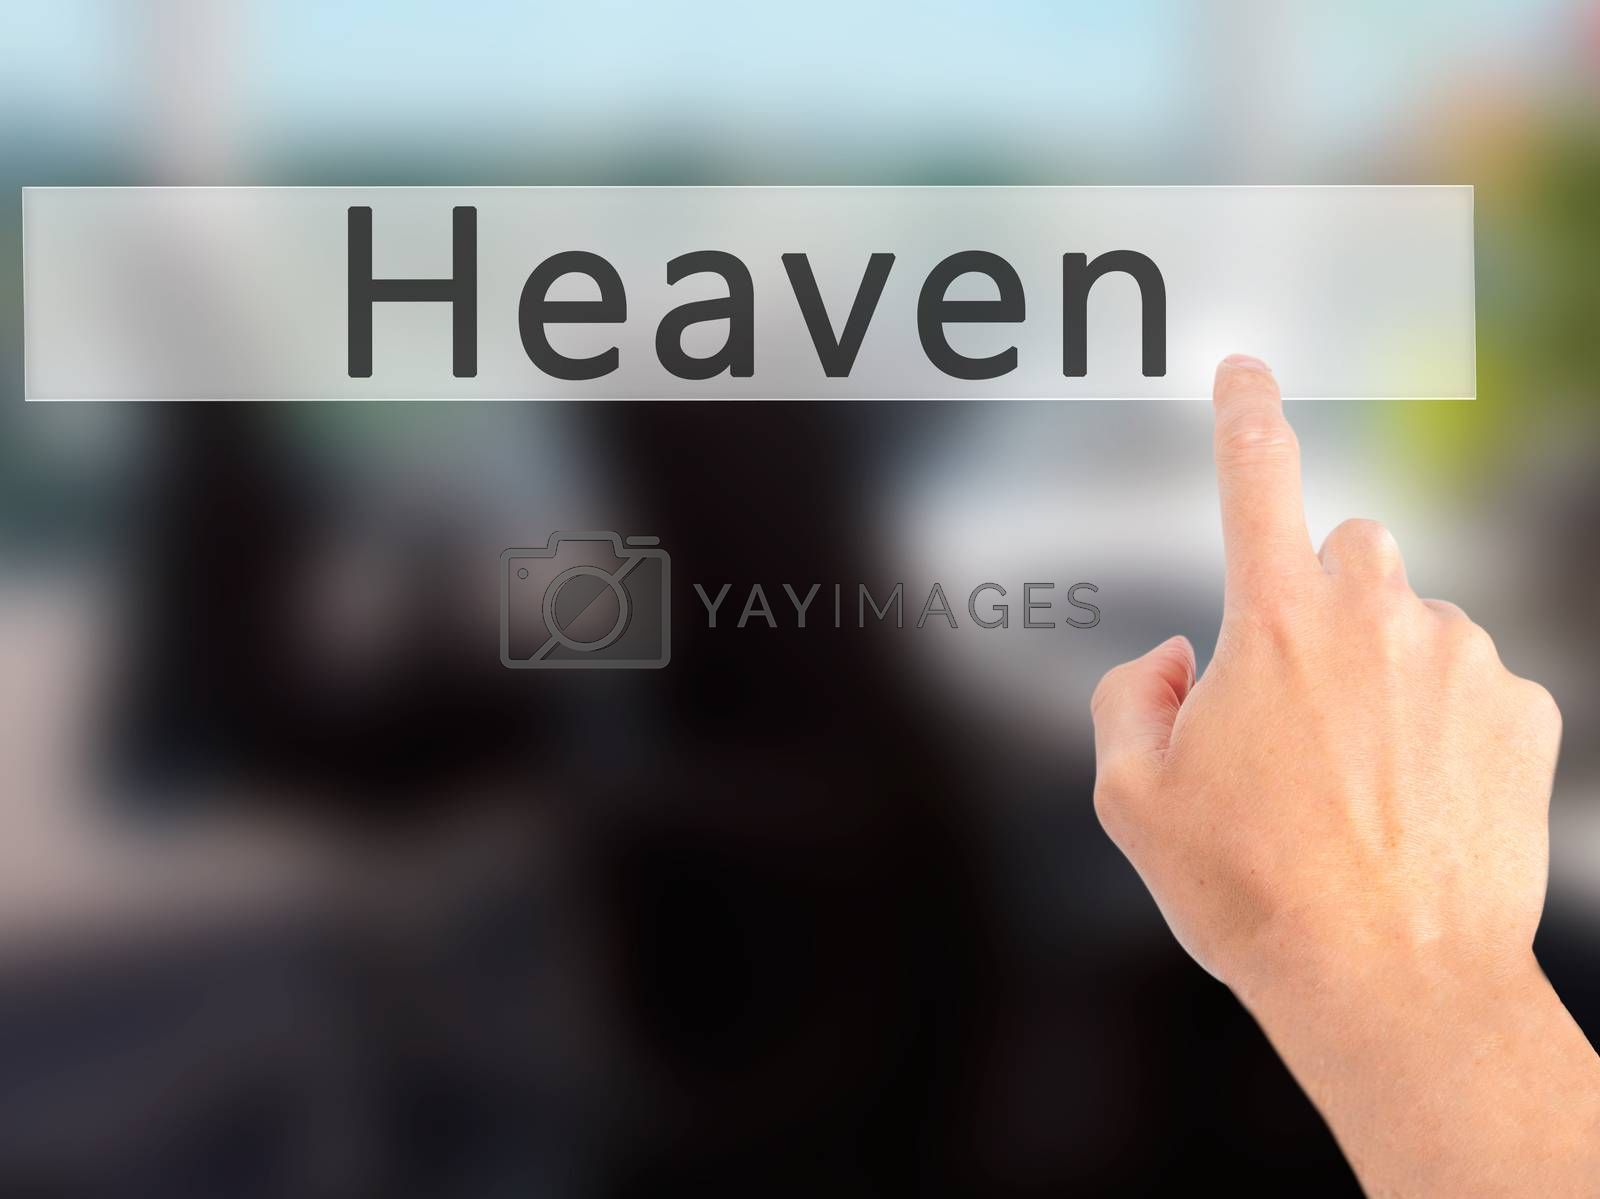 Heaven - Hand pressing a button on blurred background concept on by netsay.net